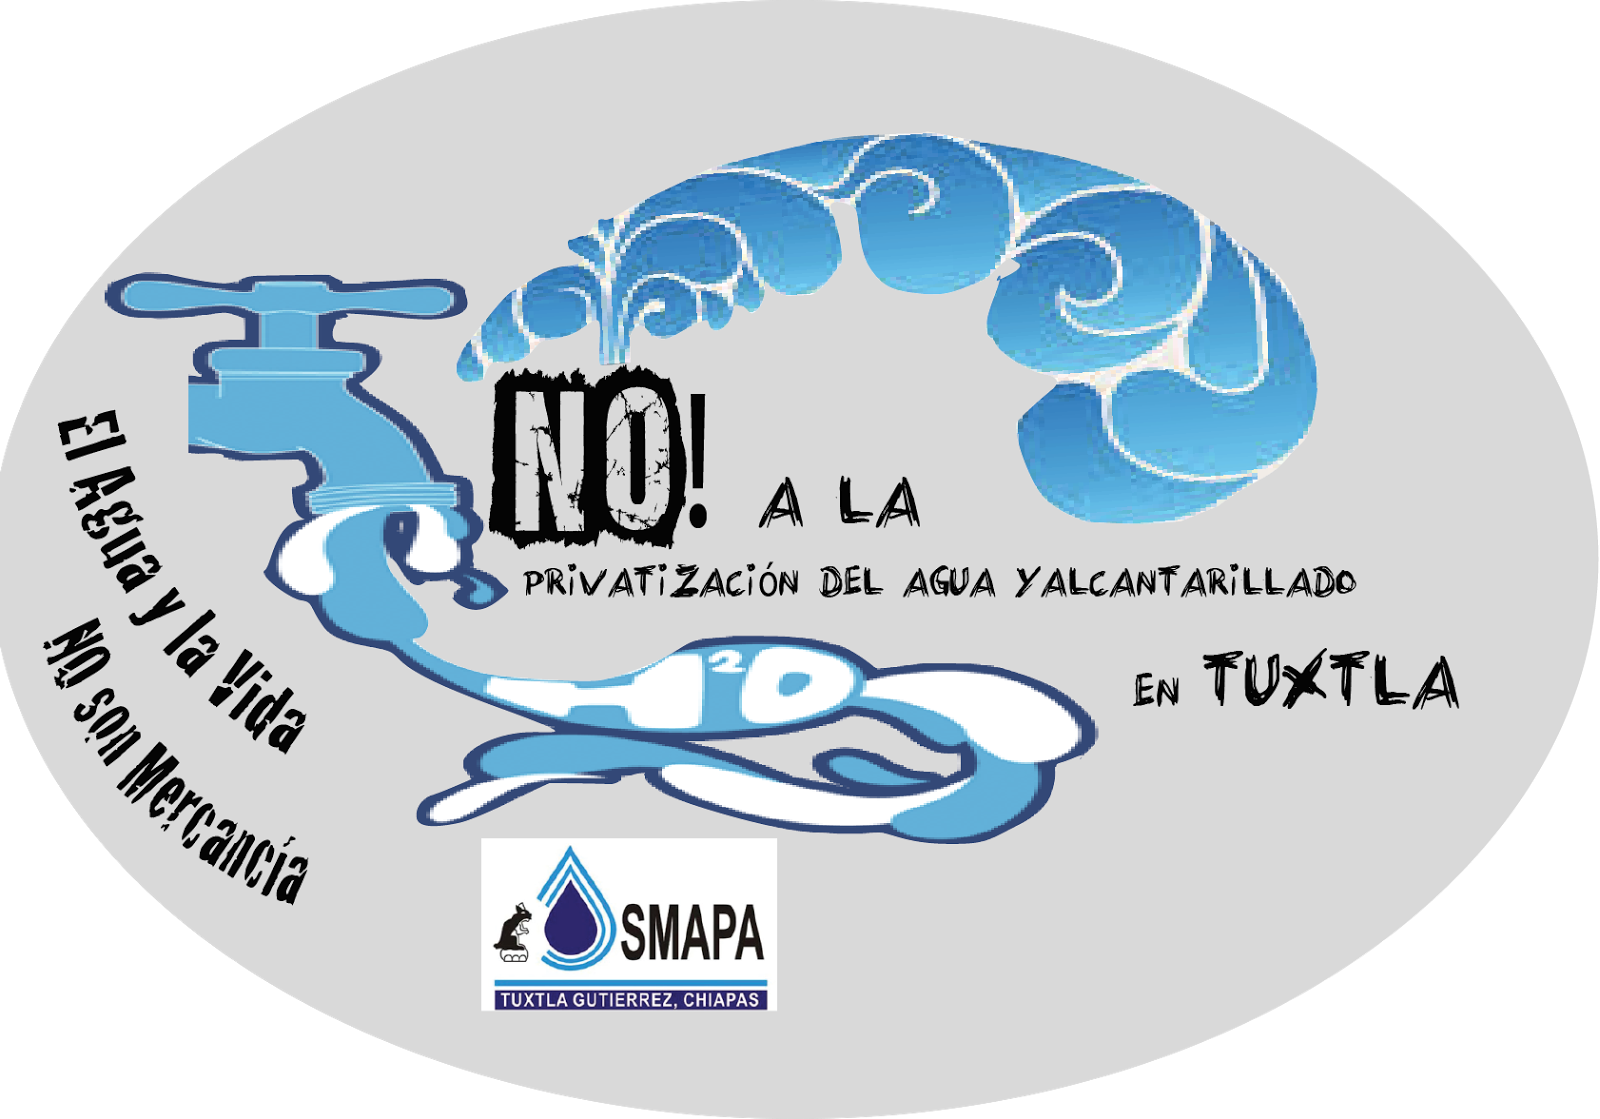 http://paginabierta.mx/wp-content/uploads/2016/11/18agua.png